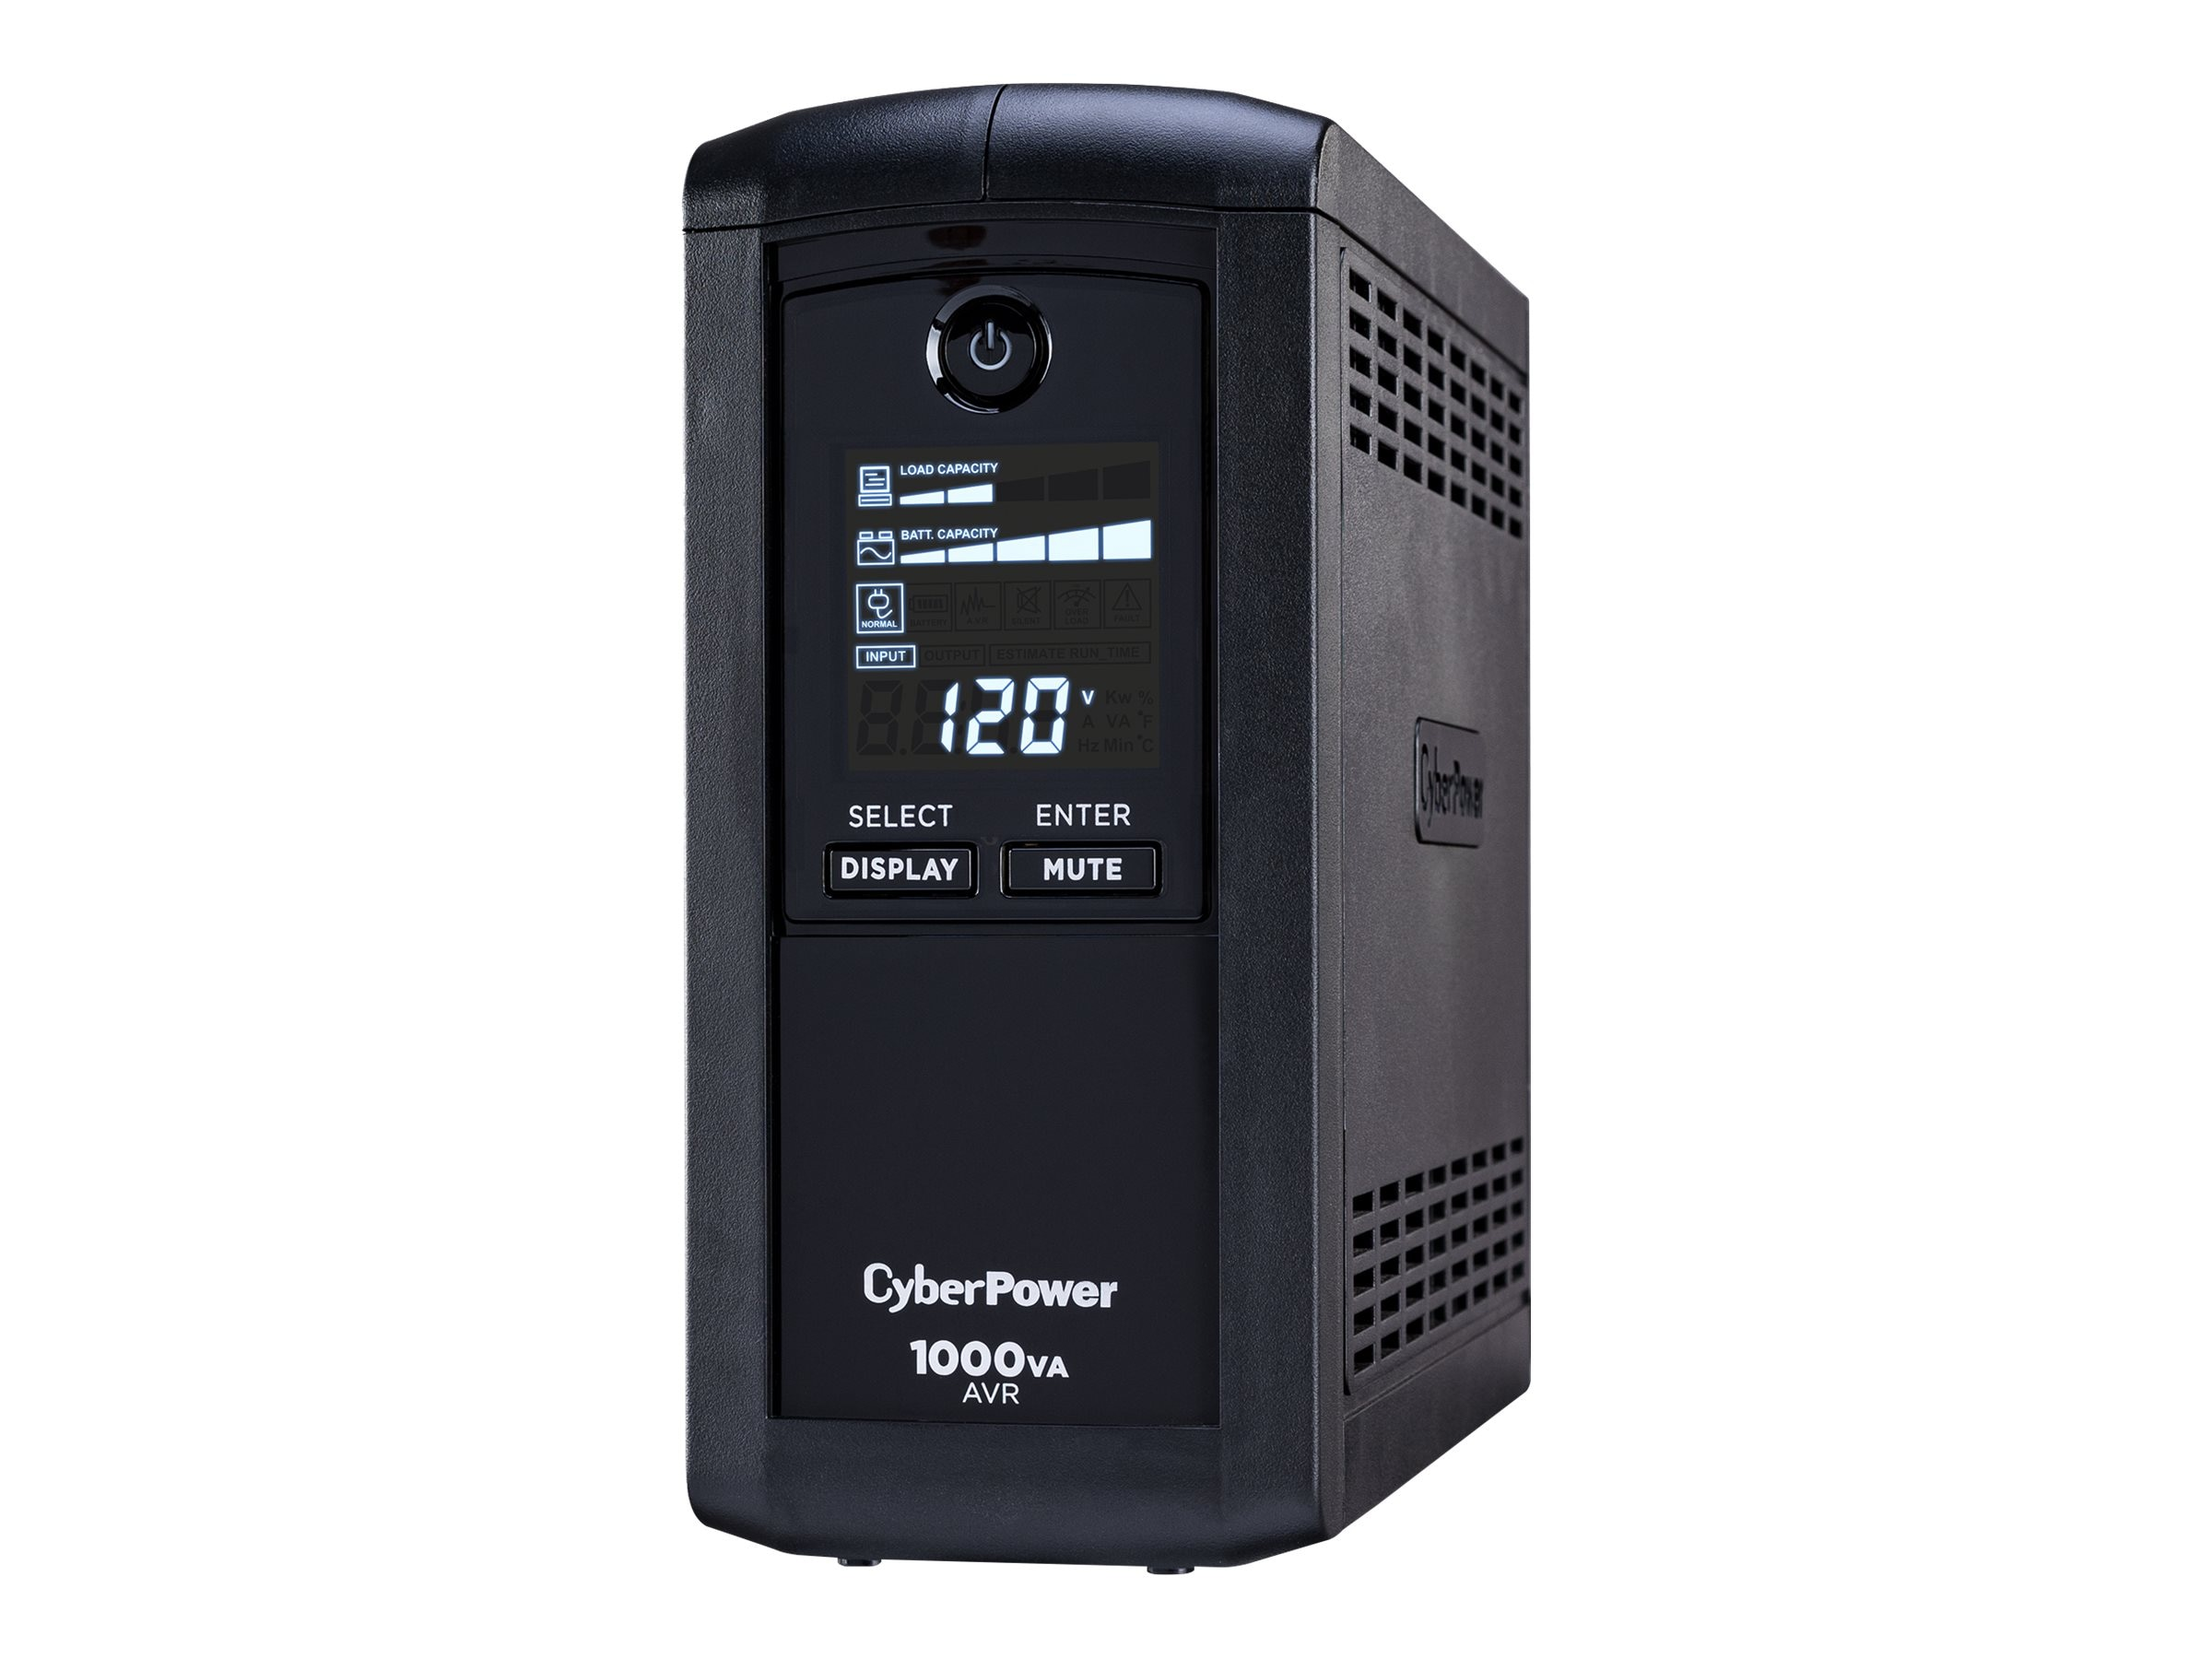 CyberPower 1000VA 600W AVR (9) Outlet RJ-11 RJ-45 Coax Tower LCD Display, Instant Rebate - Save $5, CP1000AVRLCD, 7724474, Battery Backup/UPS